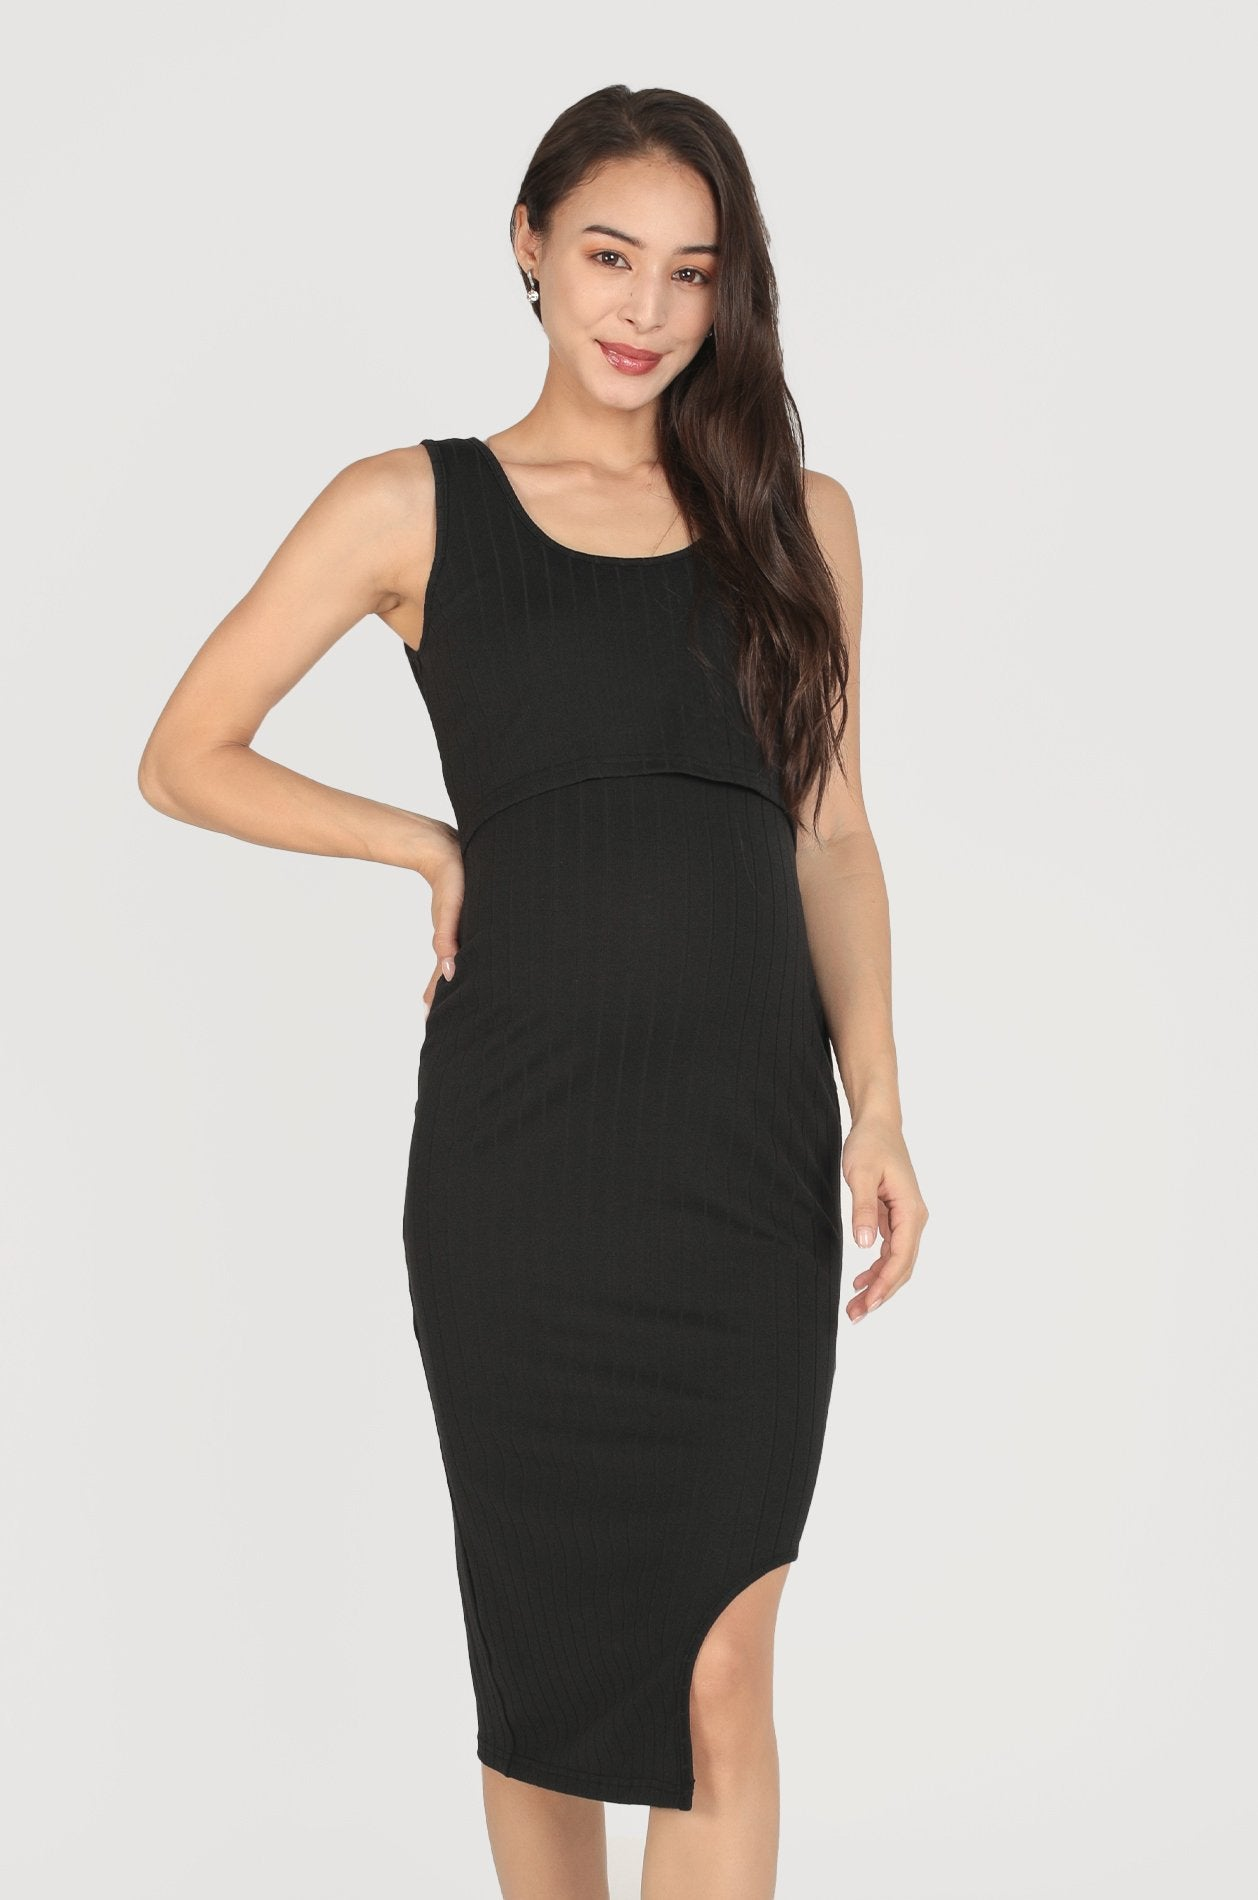 Reika Curved Hem Nursing Dress In Black Nursing Wear Jump Eat Cry